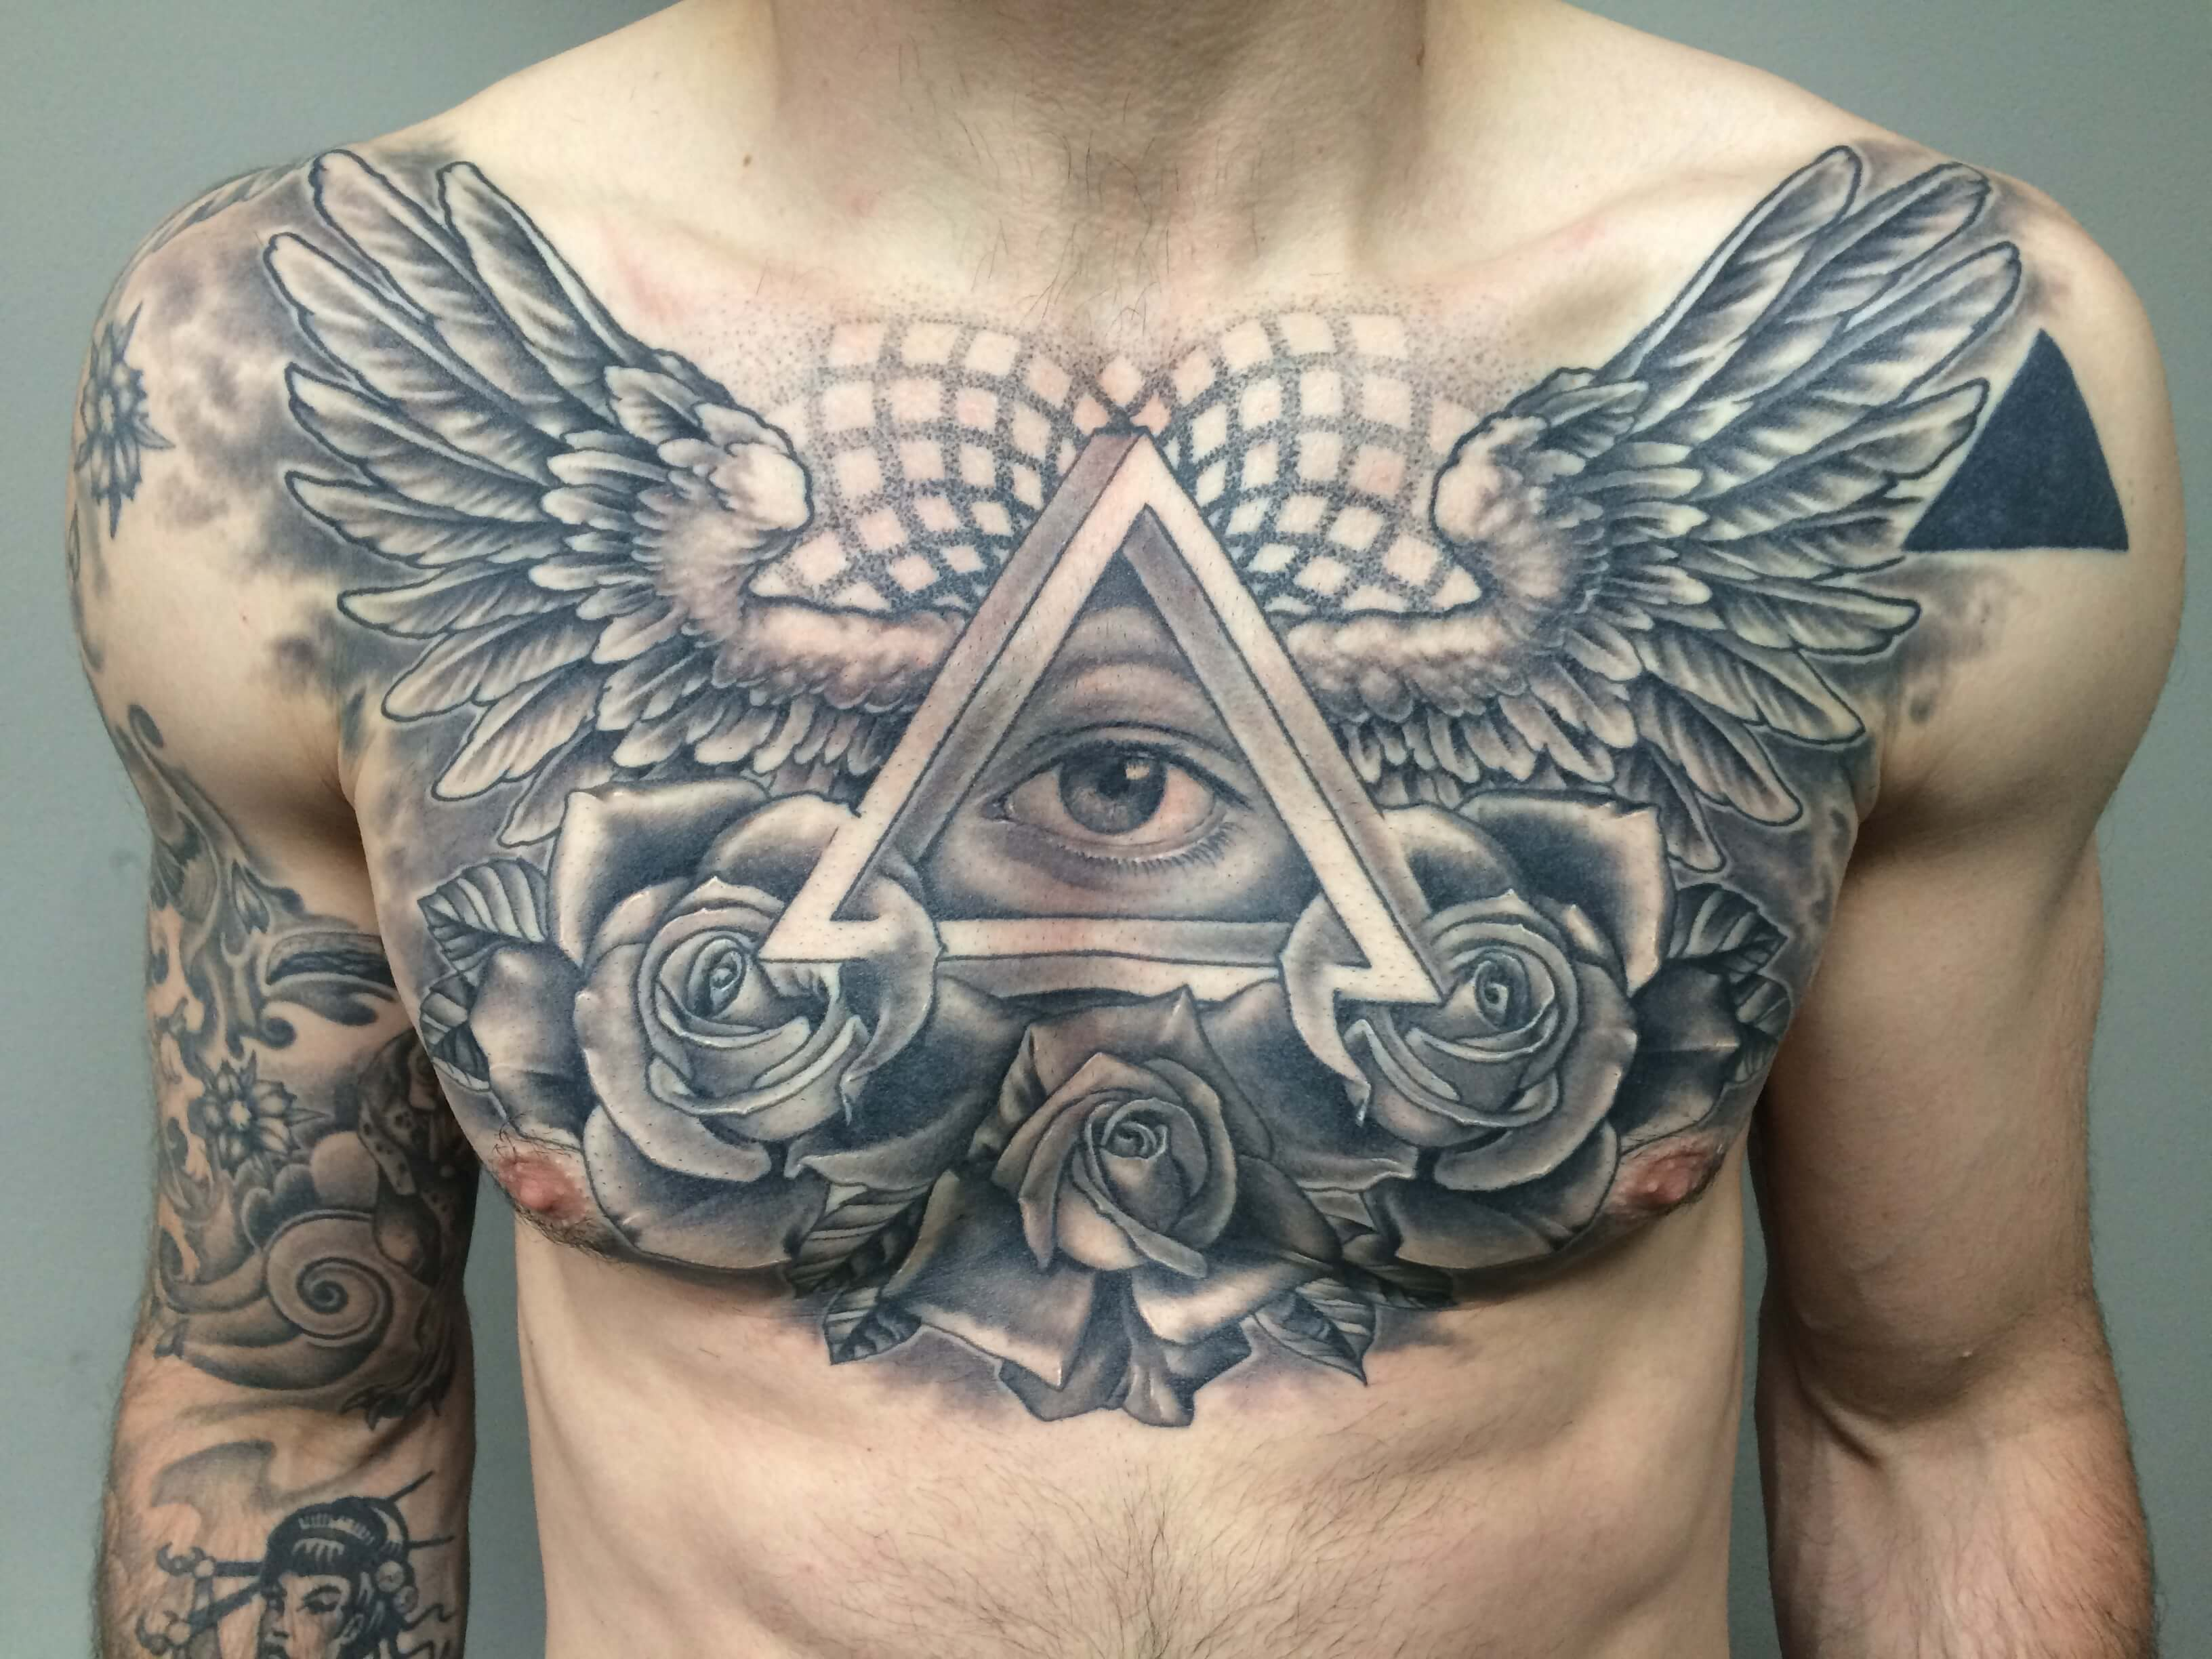 The 100 Best Chest Tattoos For Men Improb for dimensions 3264 X 2448